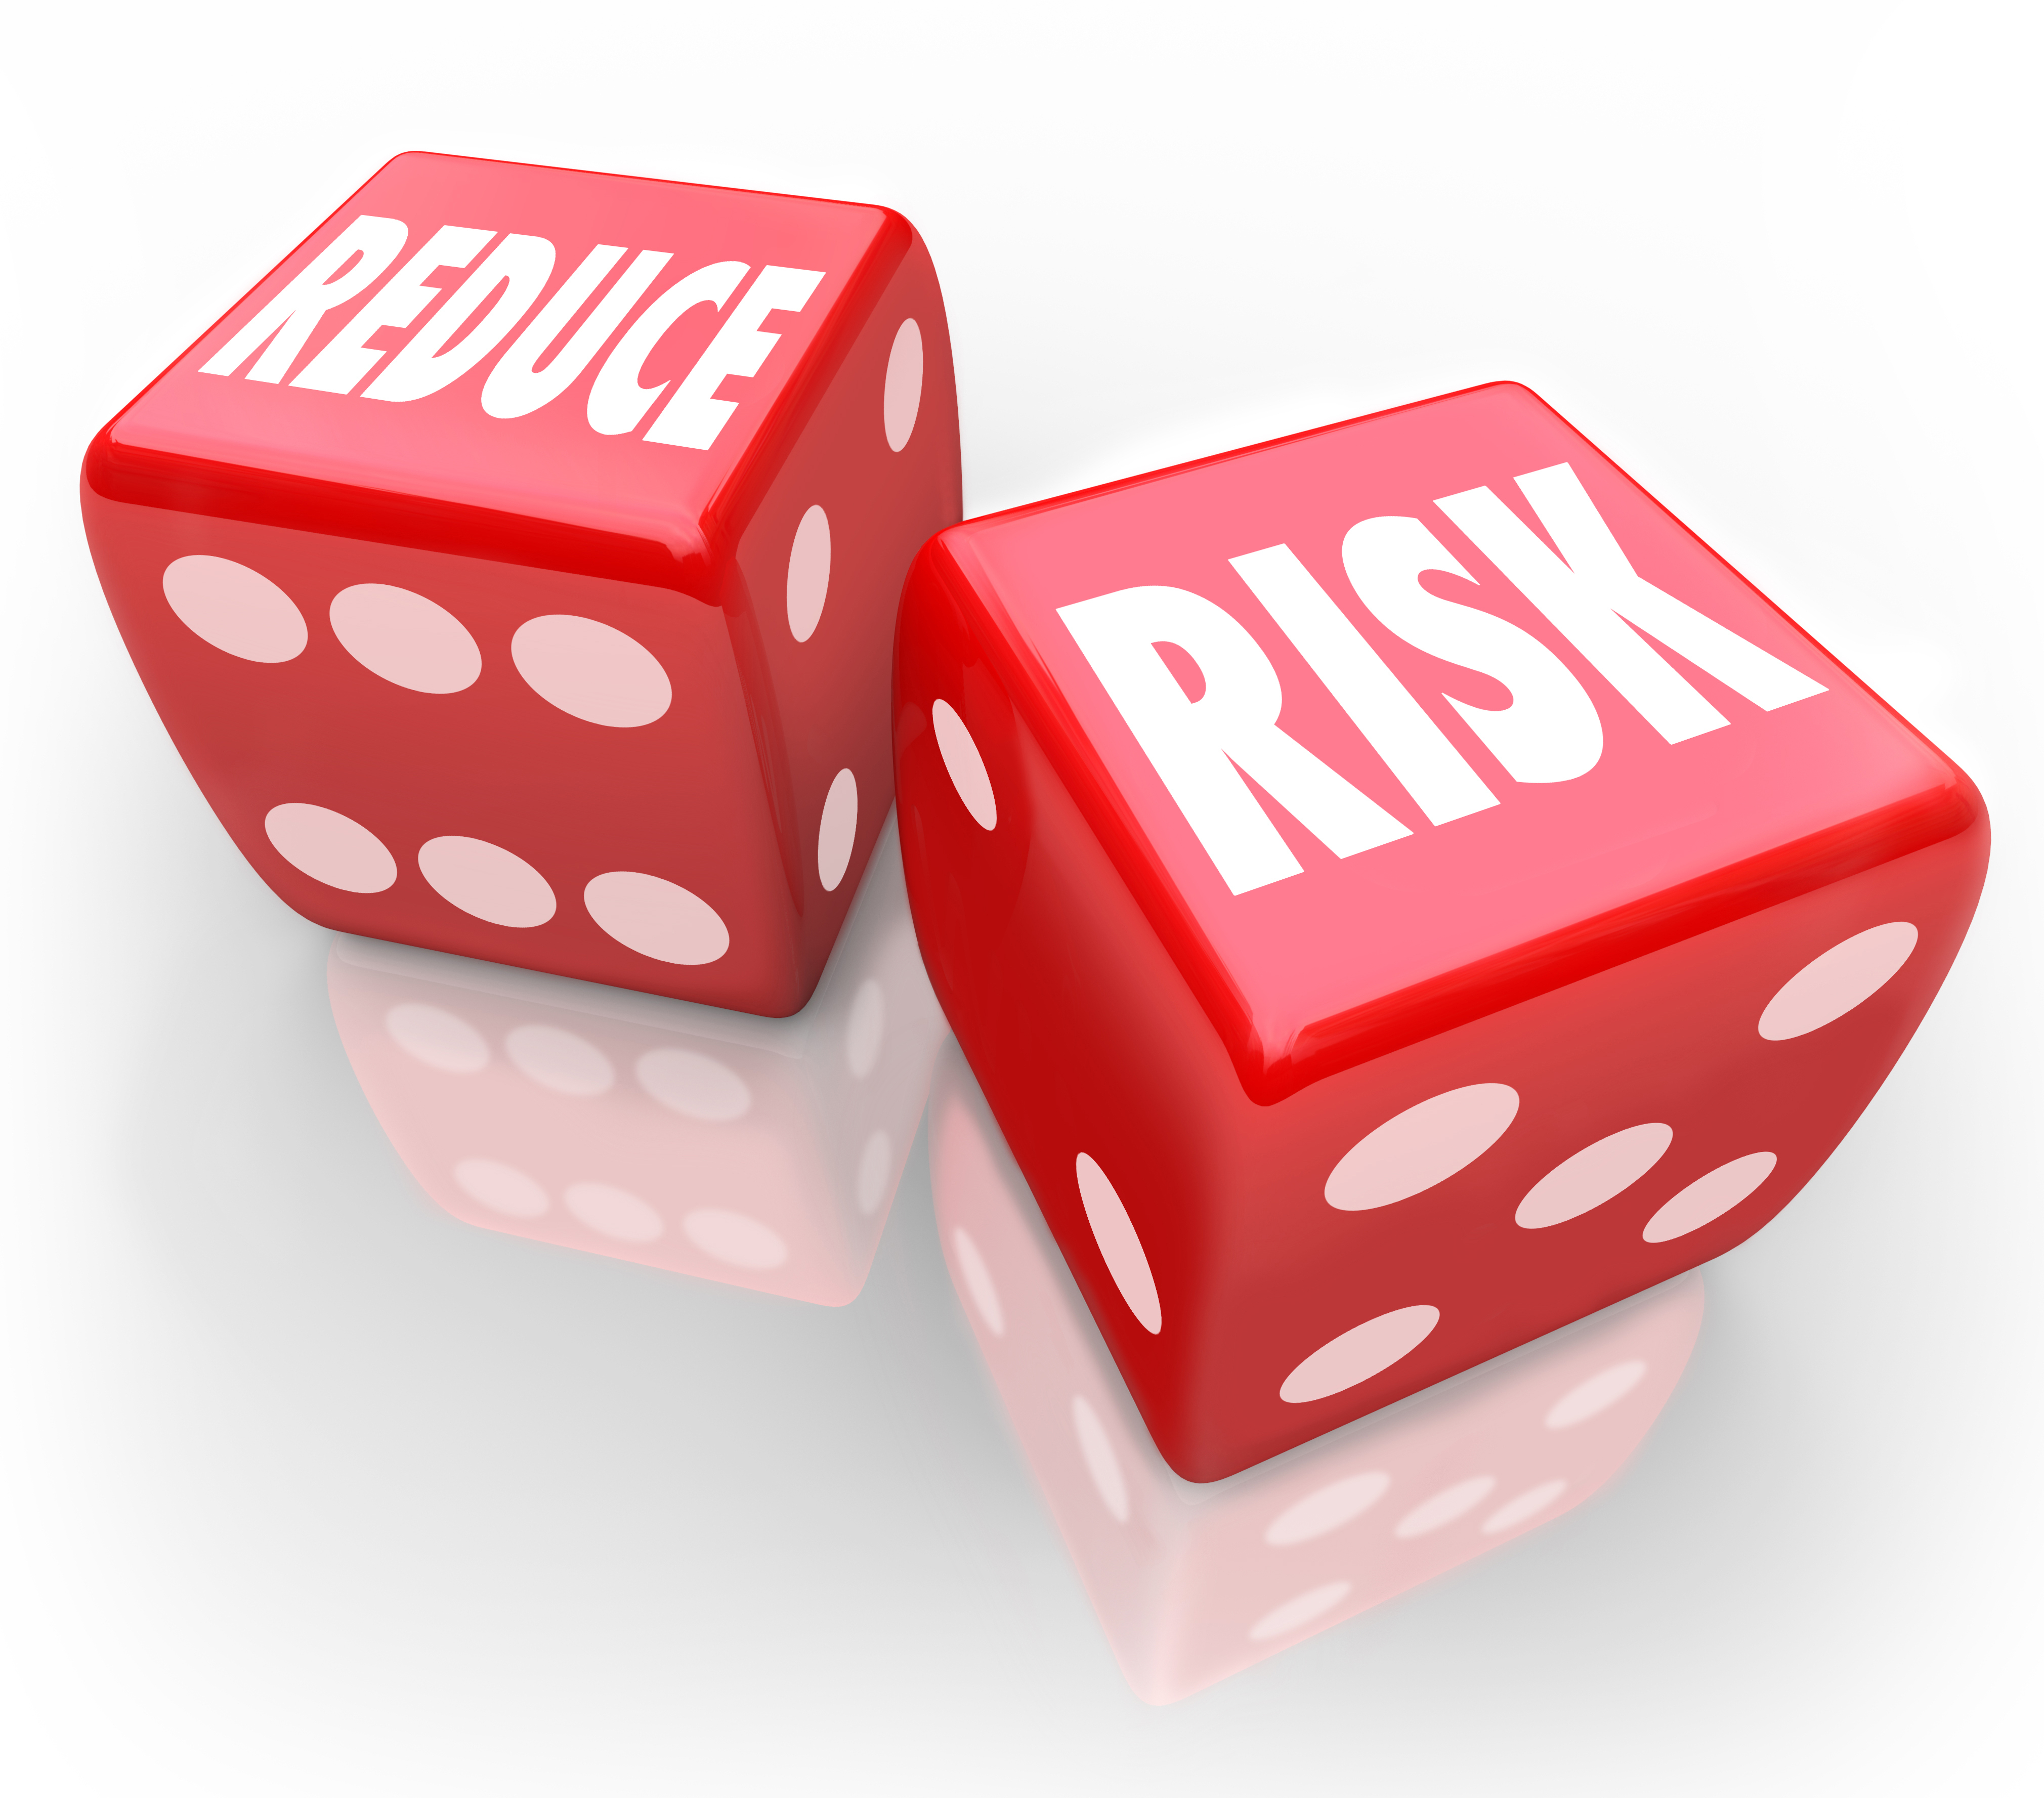 Reduce Risk words on two red dice to illustrate lowering your ch